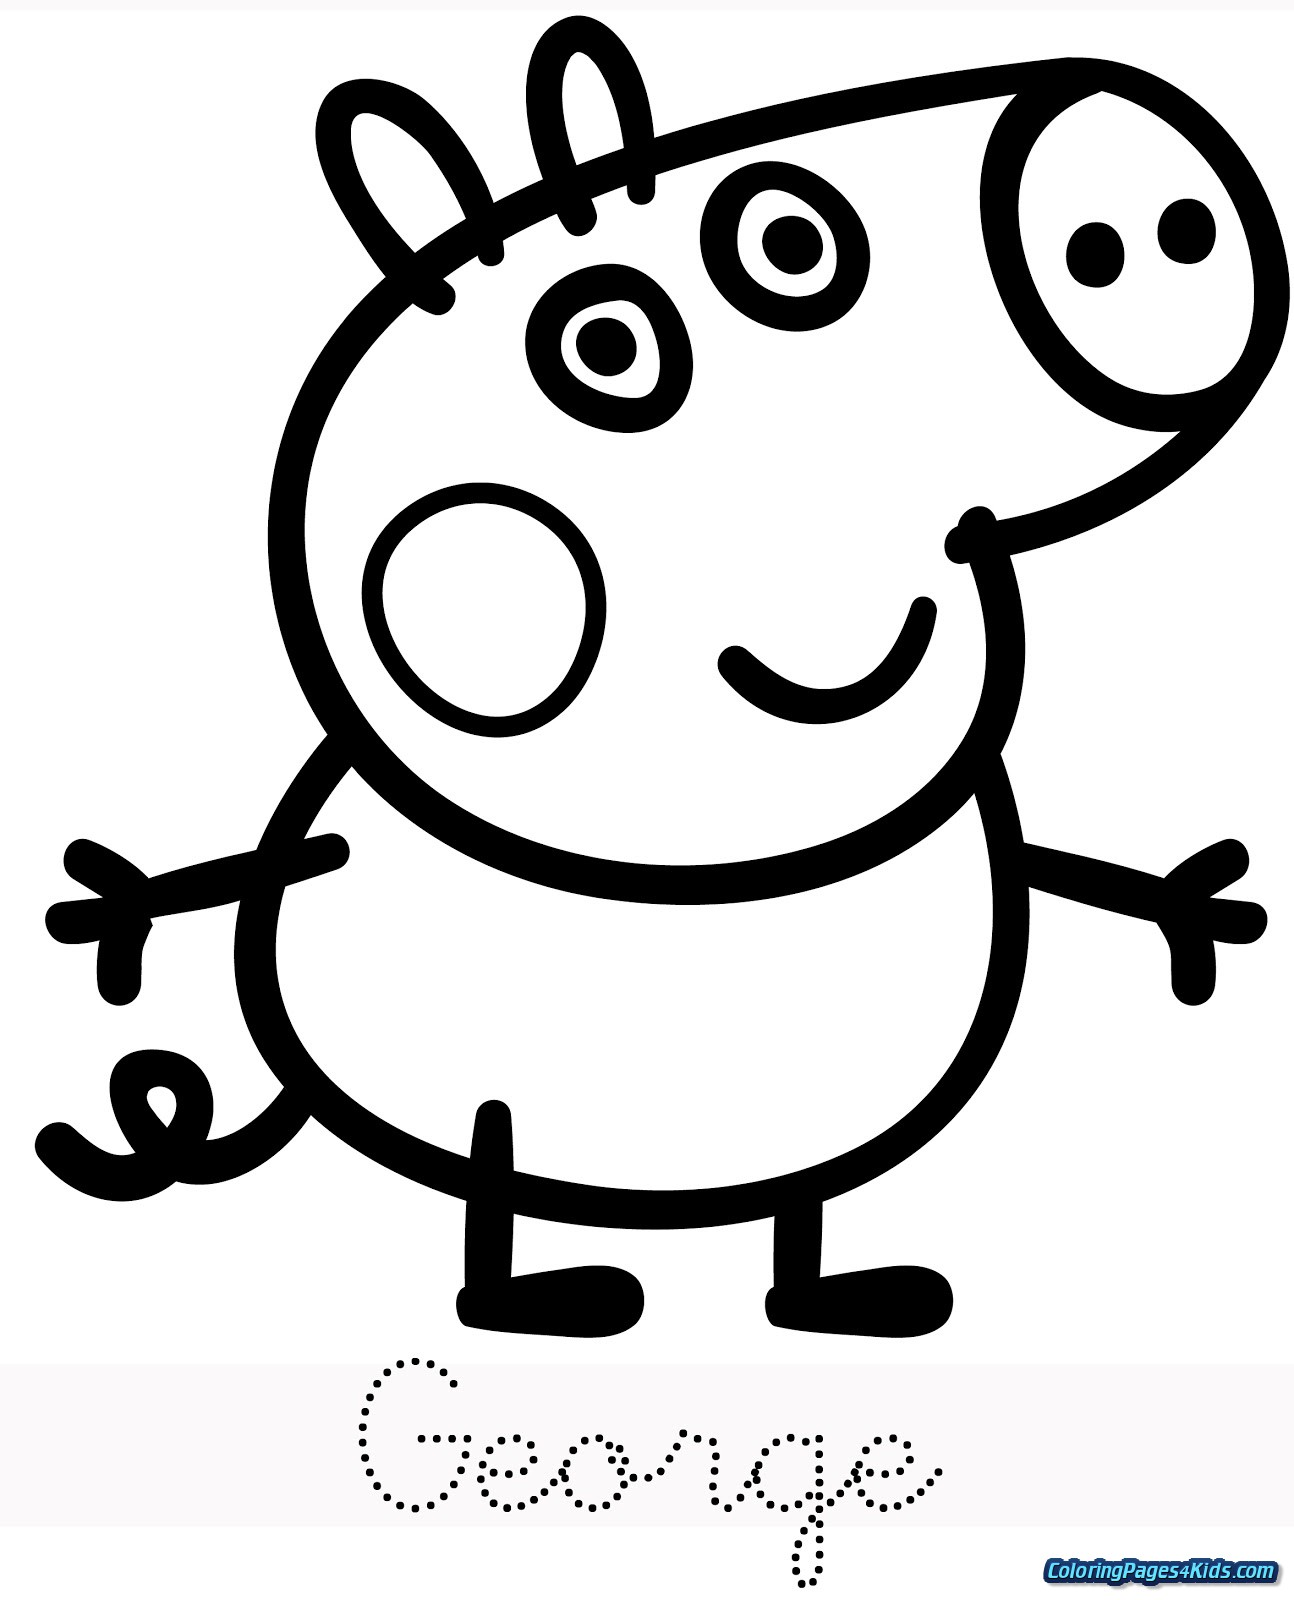 peppa pig colouring pages online peppa pig coloring pages getcoloringpagescom pig pages colouring peppa online